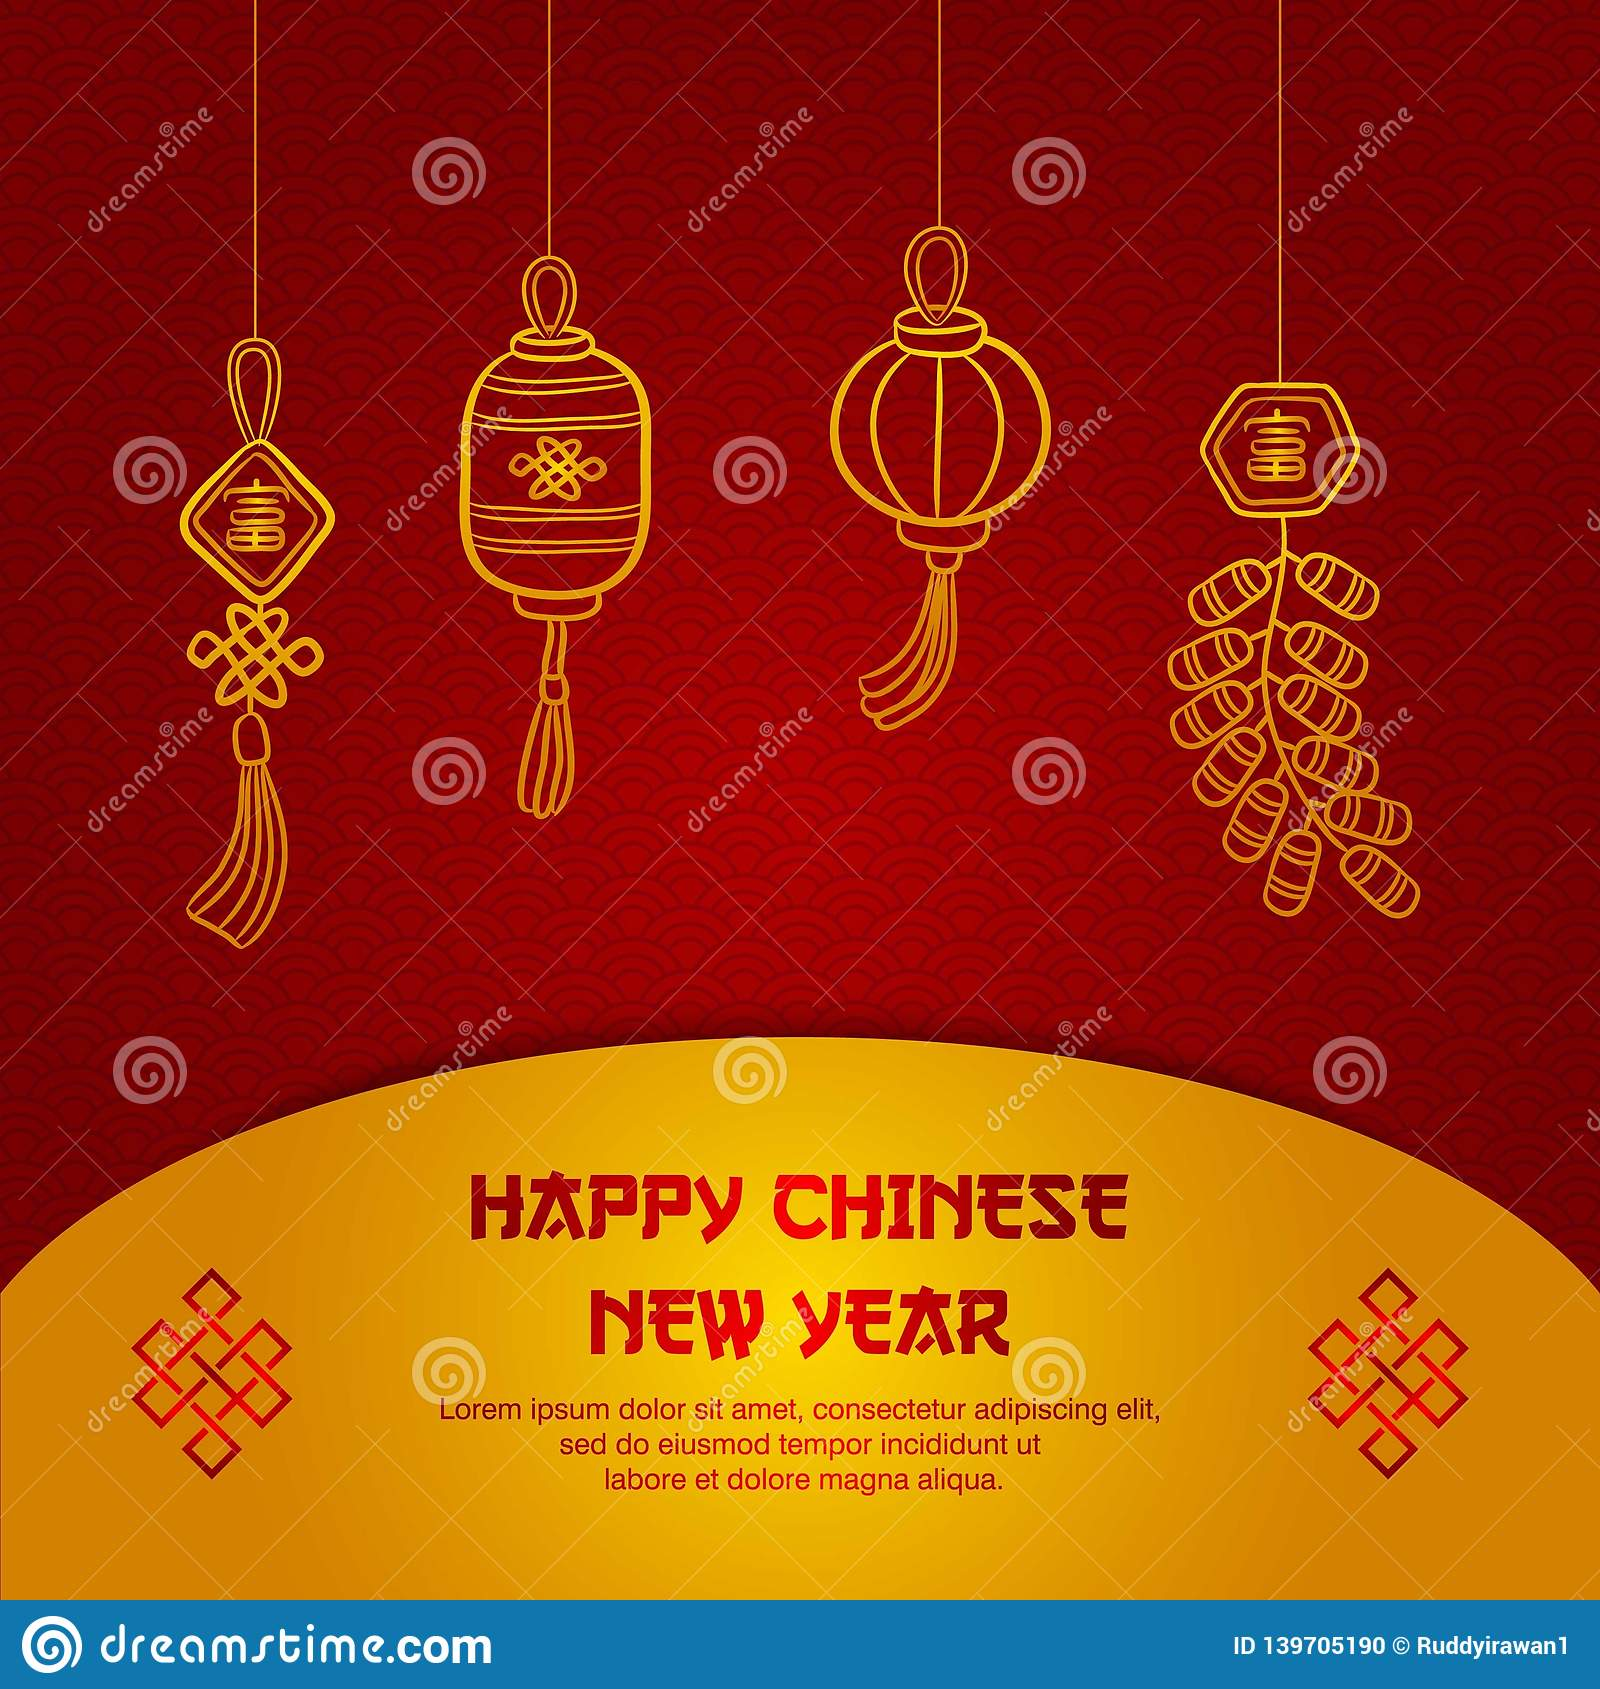 Greeting card chinese new year , poster or banner design, chinese font is mean lucrative